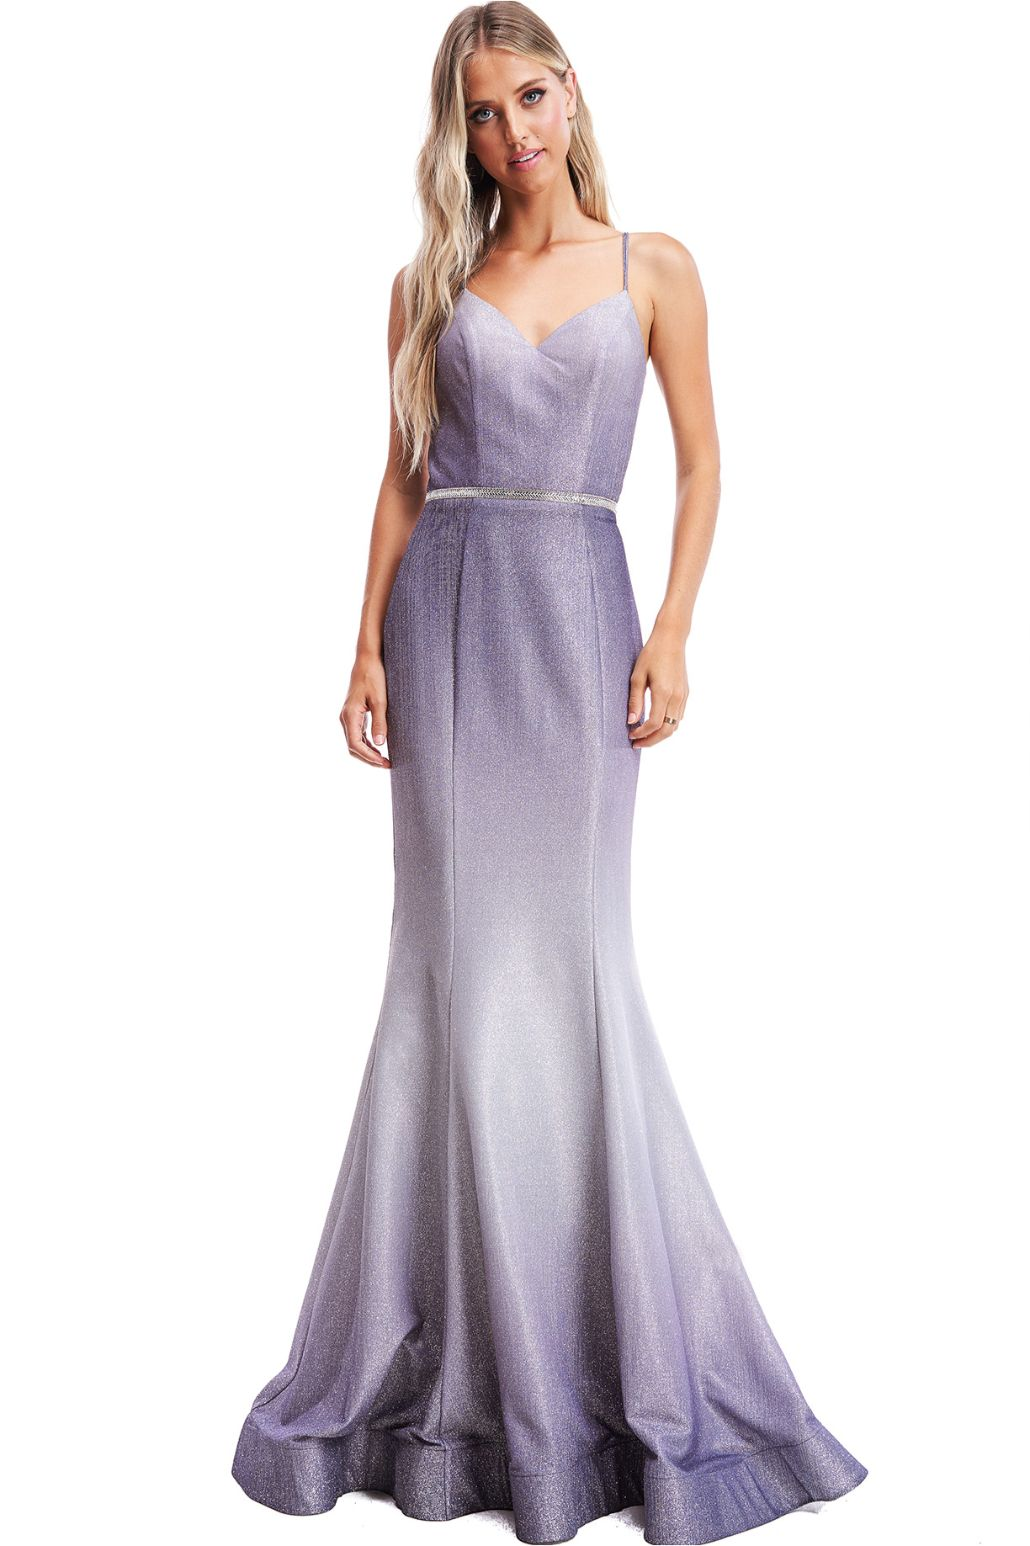 Dresses For All Occasions in San Antonio TX | Shangri-La